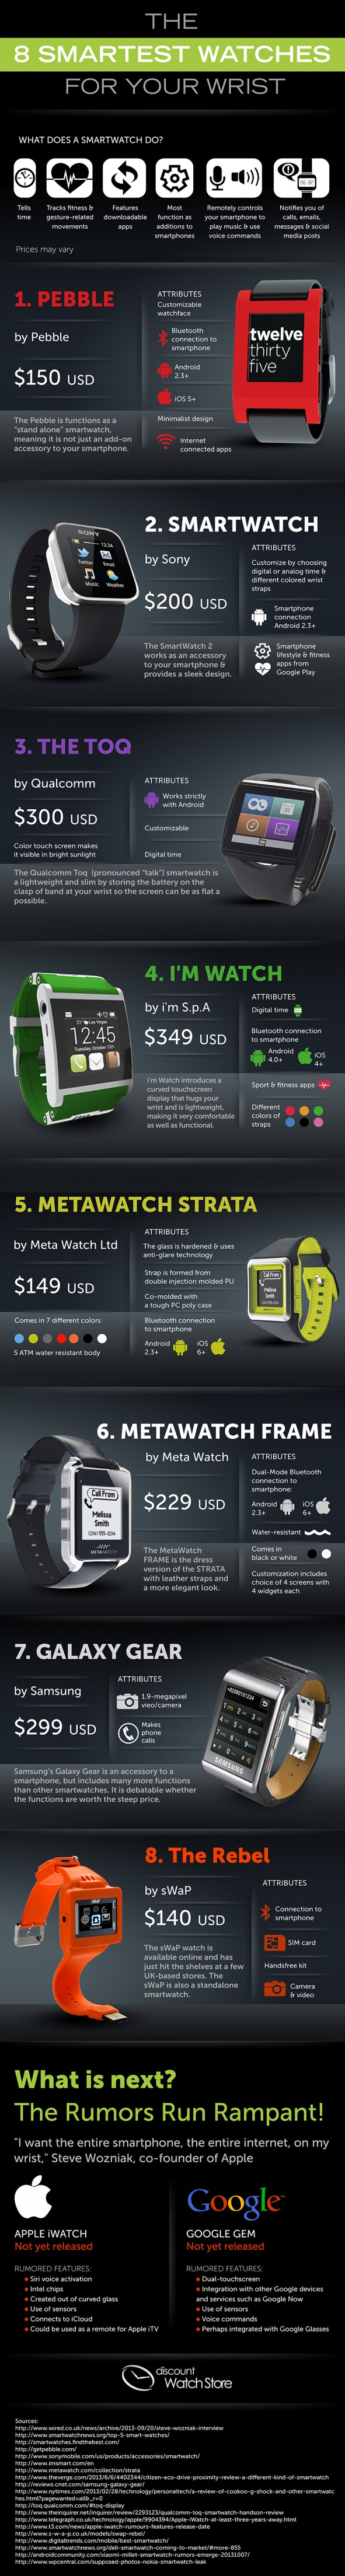 8 Smartest Watches infographic